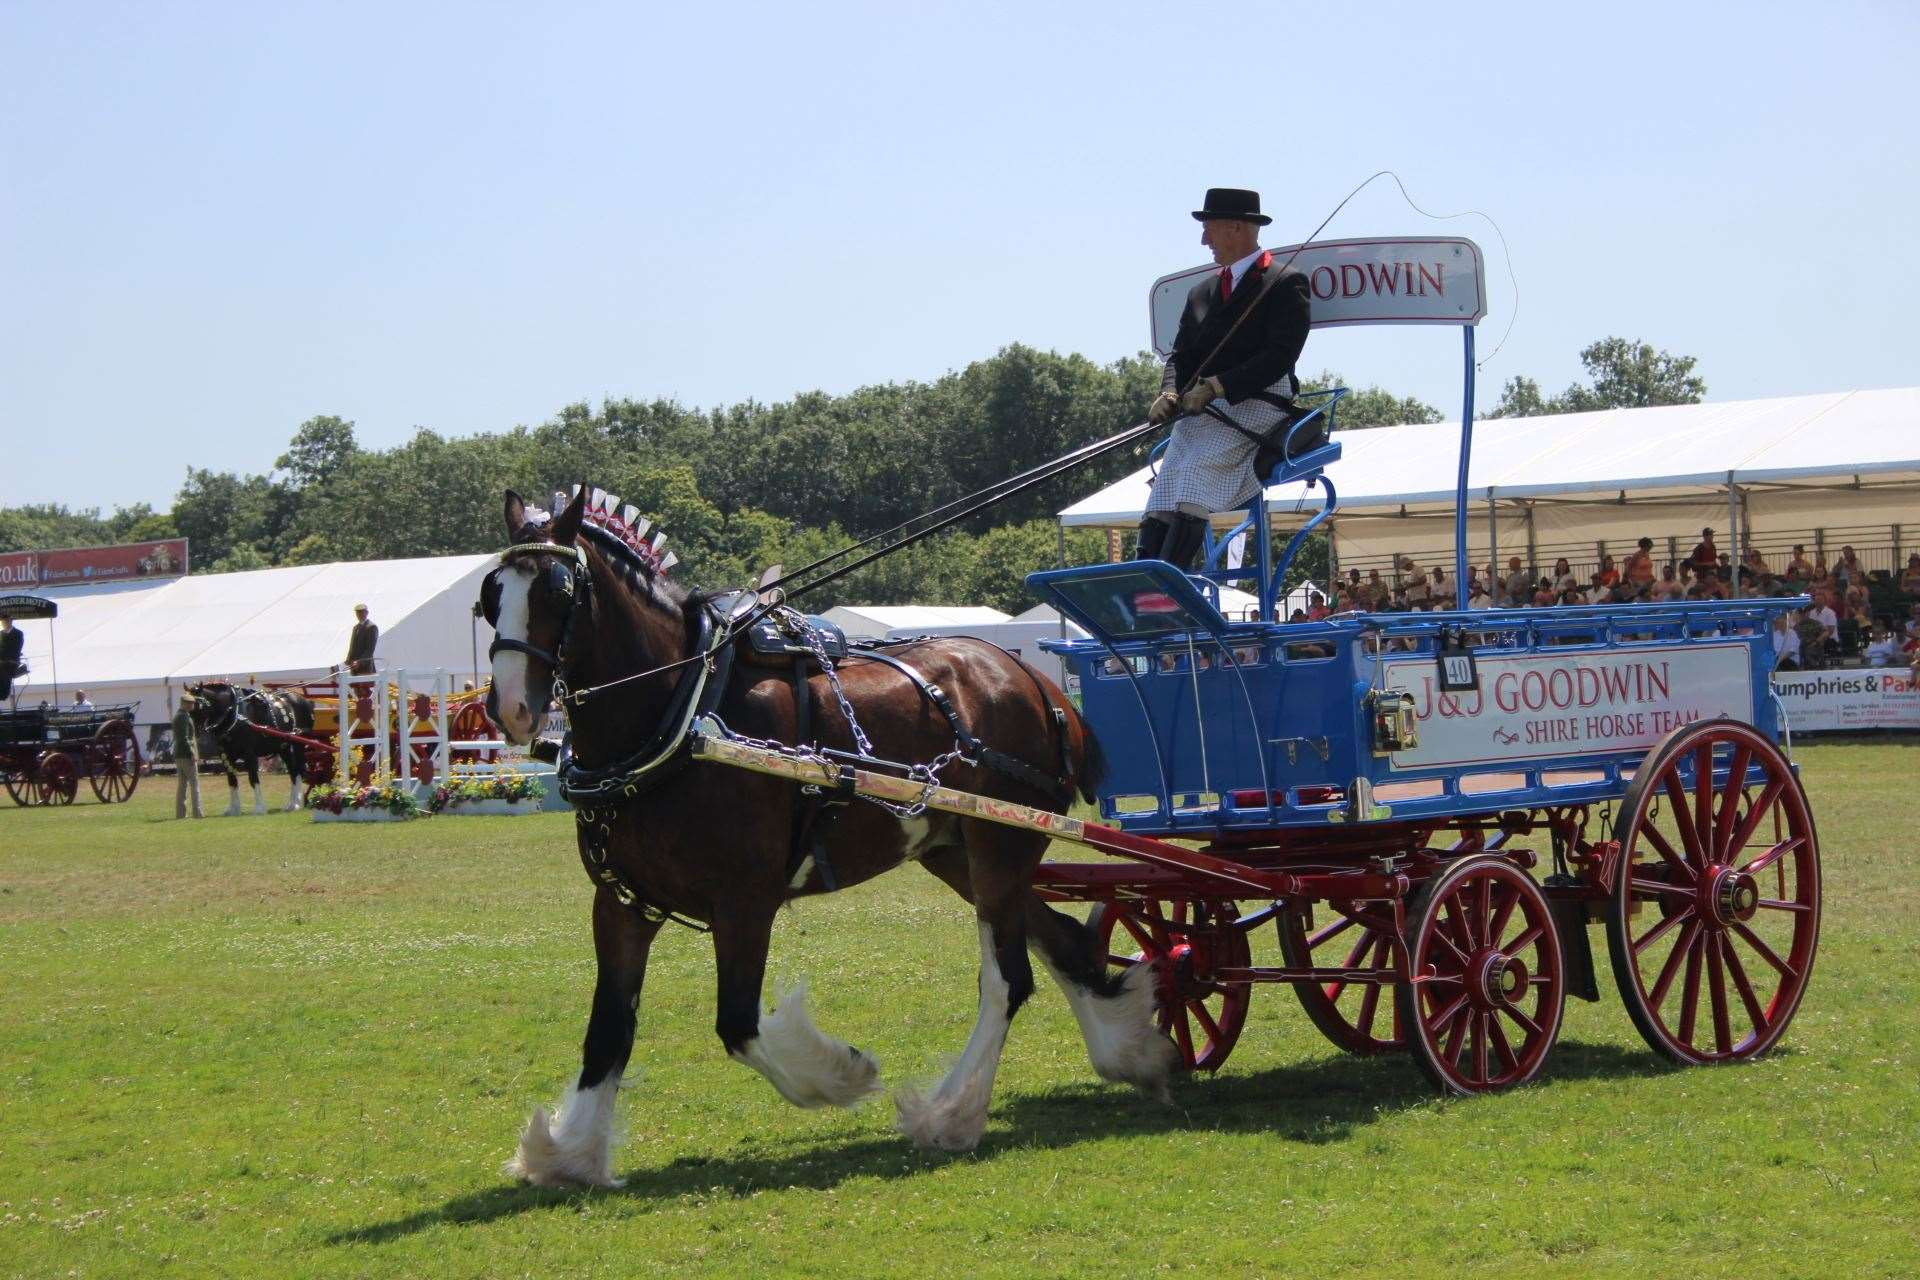 John Goodwin of Sheppey with his shire horse at the Kent County Show. File photo (13547200)